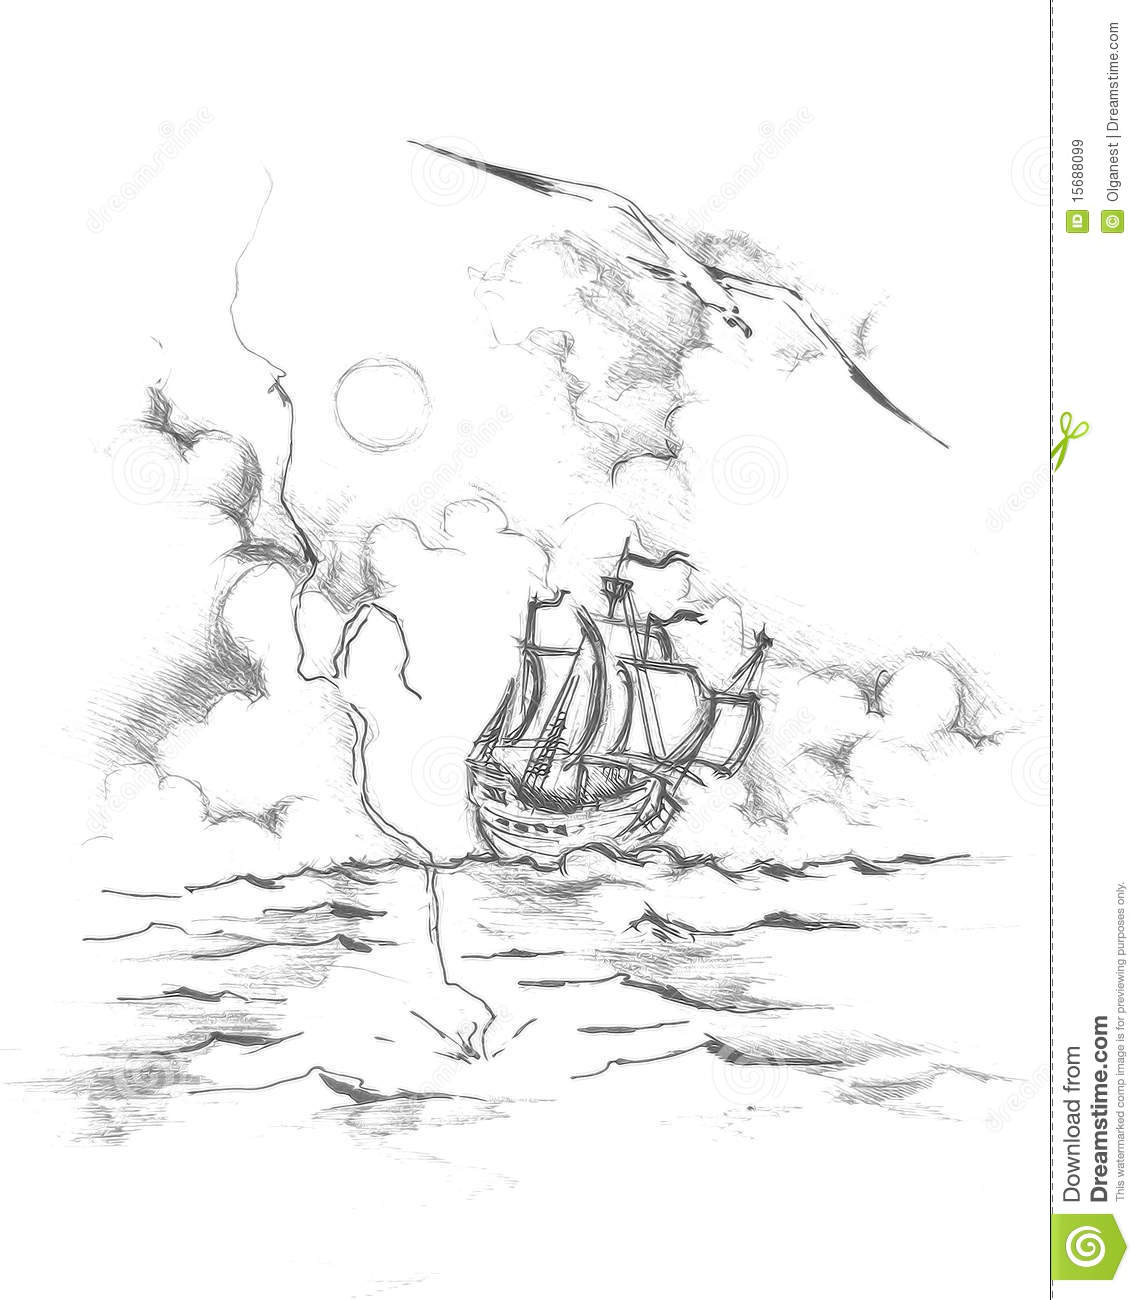 The ship drawing(2)